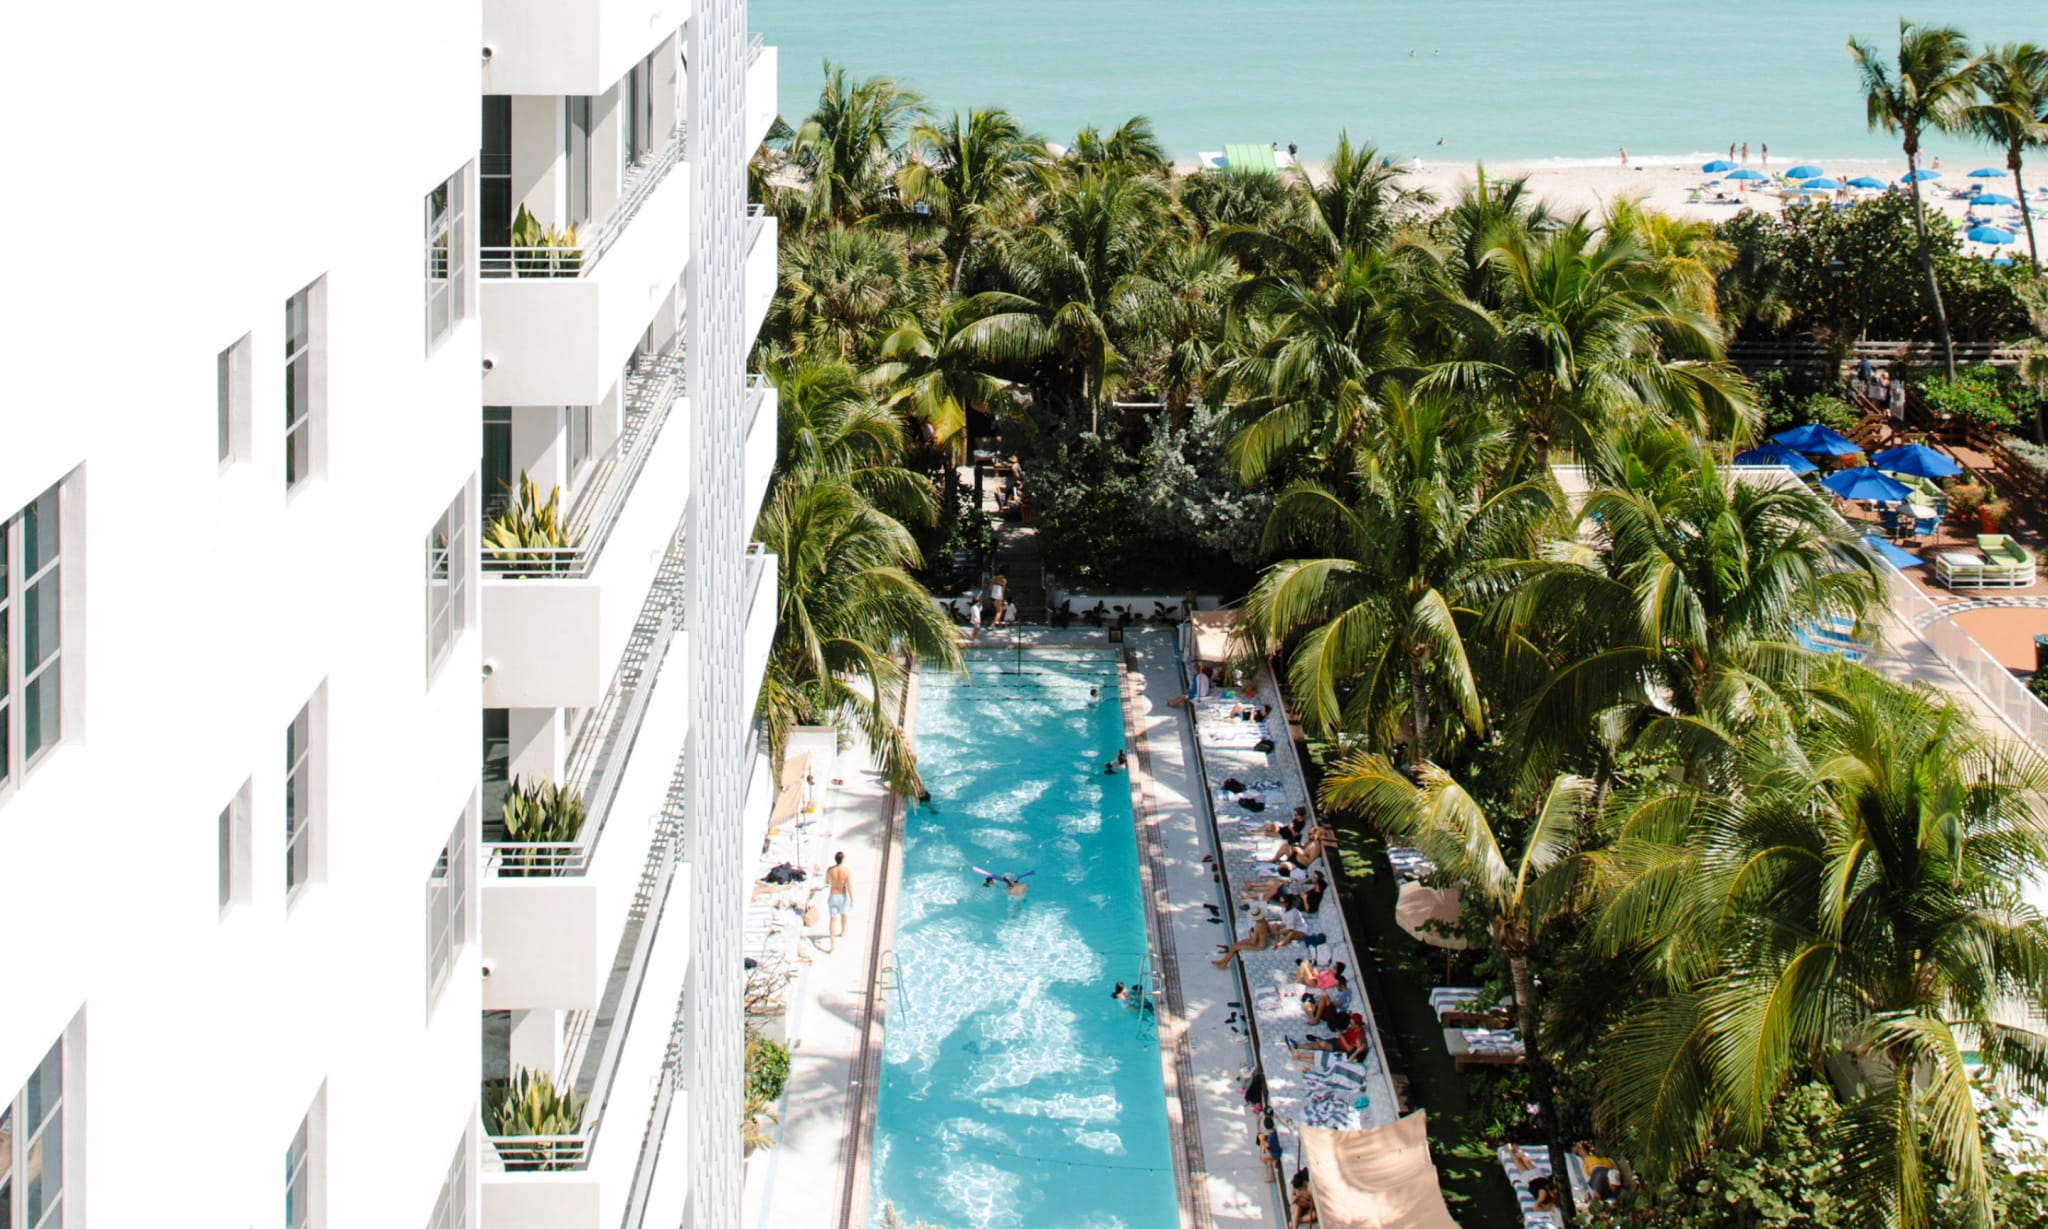 Looking down onto a pool and beach area from the top of a white building.